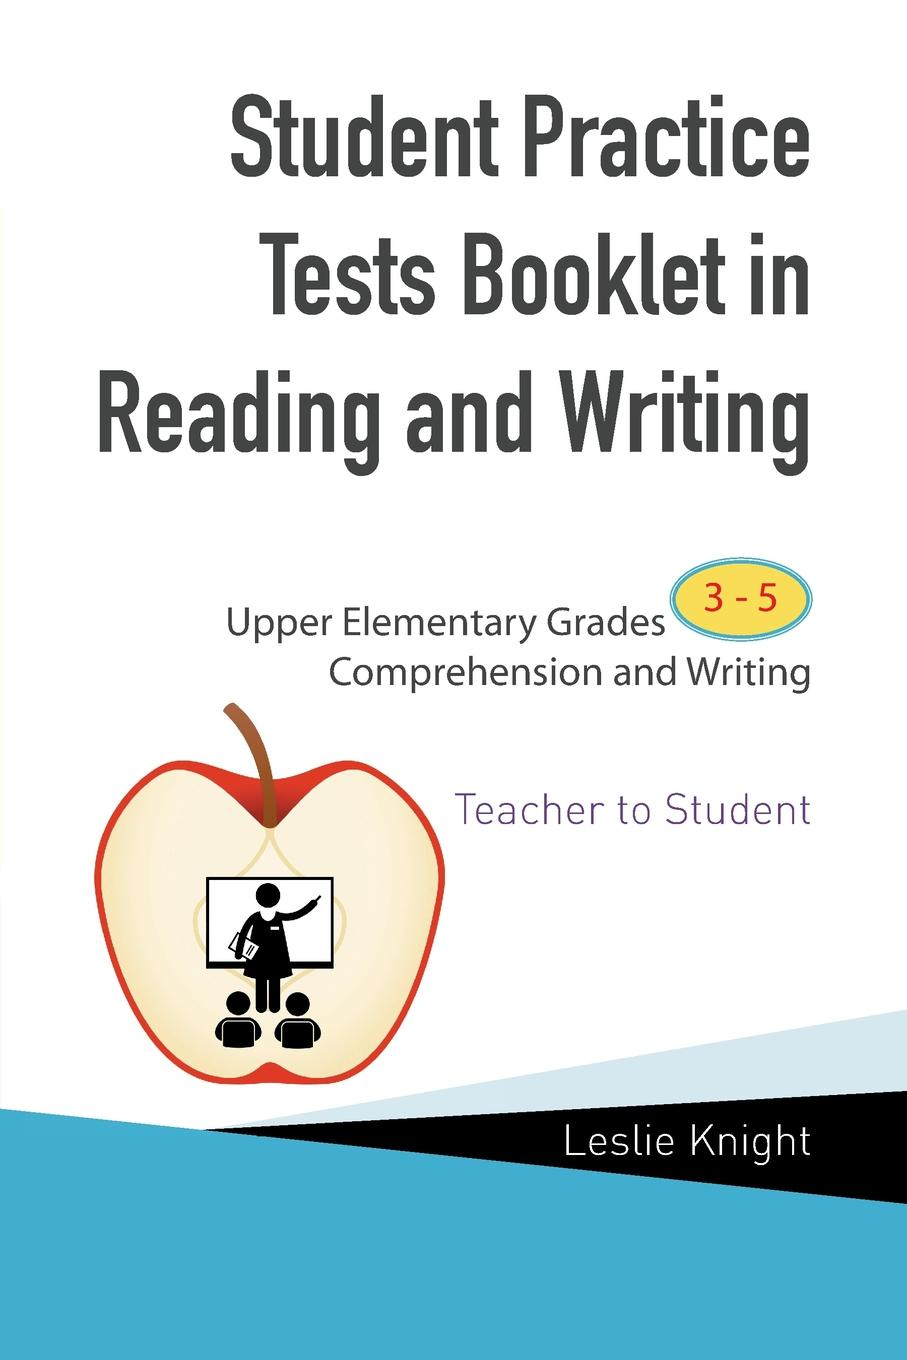 Leslie Knight Student Practice Tests Booklet in Reading and Writing. Upper Elementary Grades 3 to 5 Comprehension and Writing Teacher to Student student толстовка